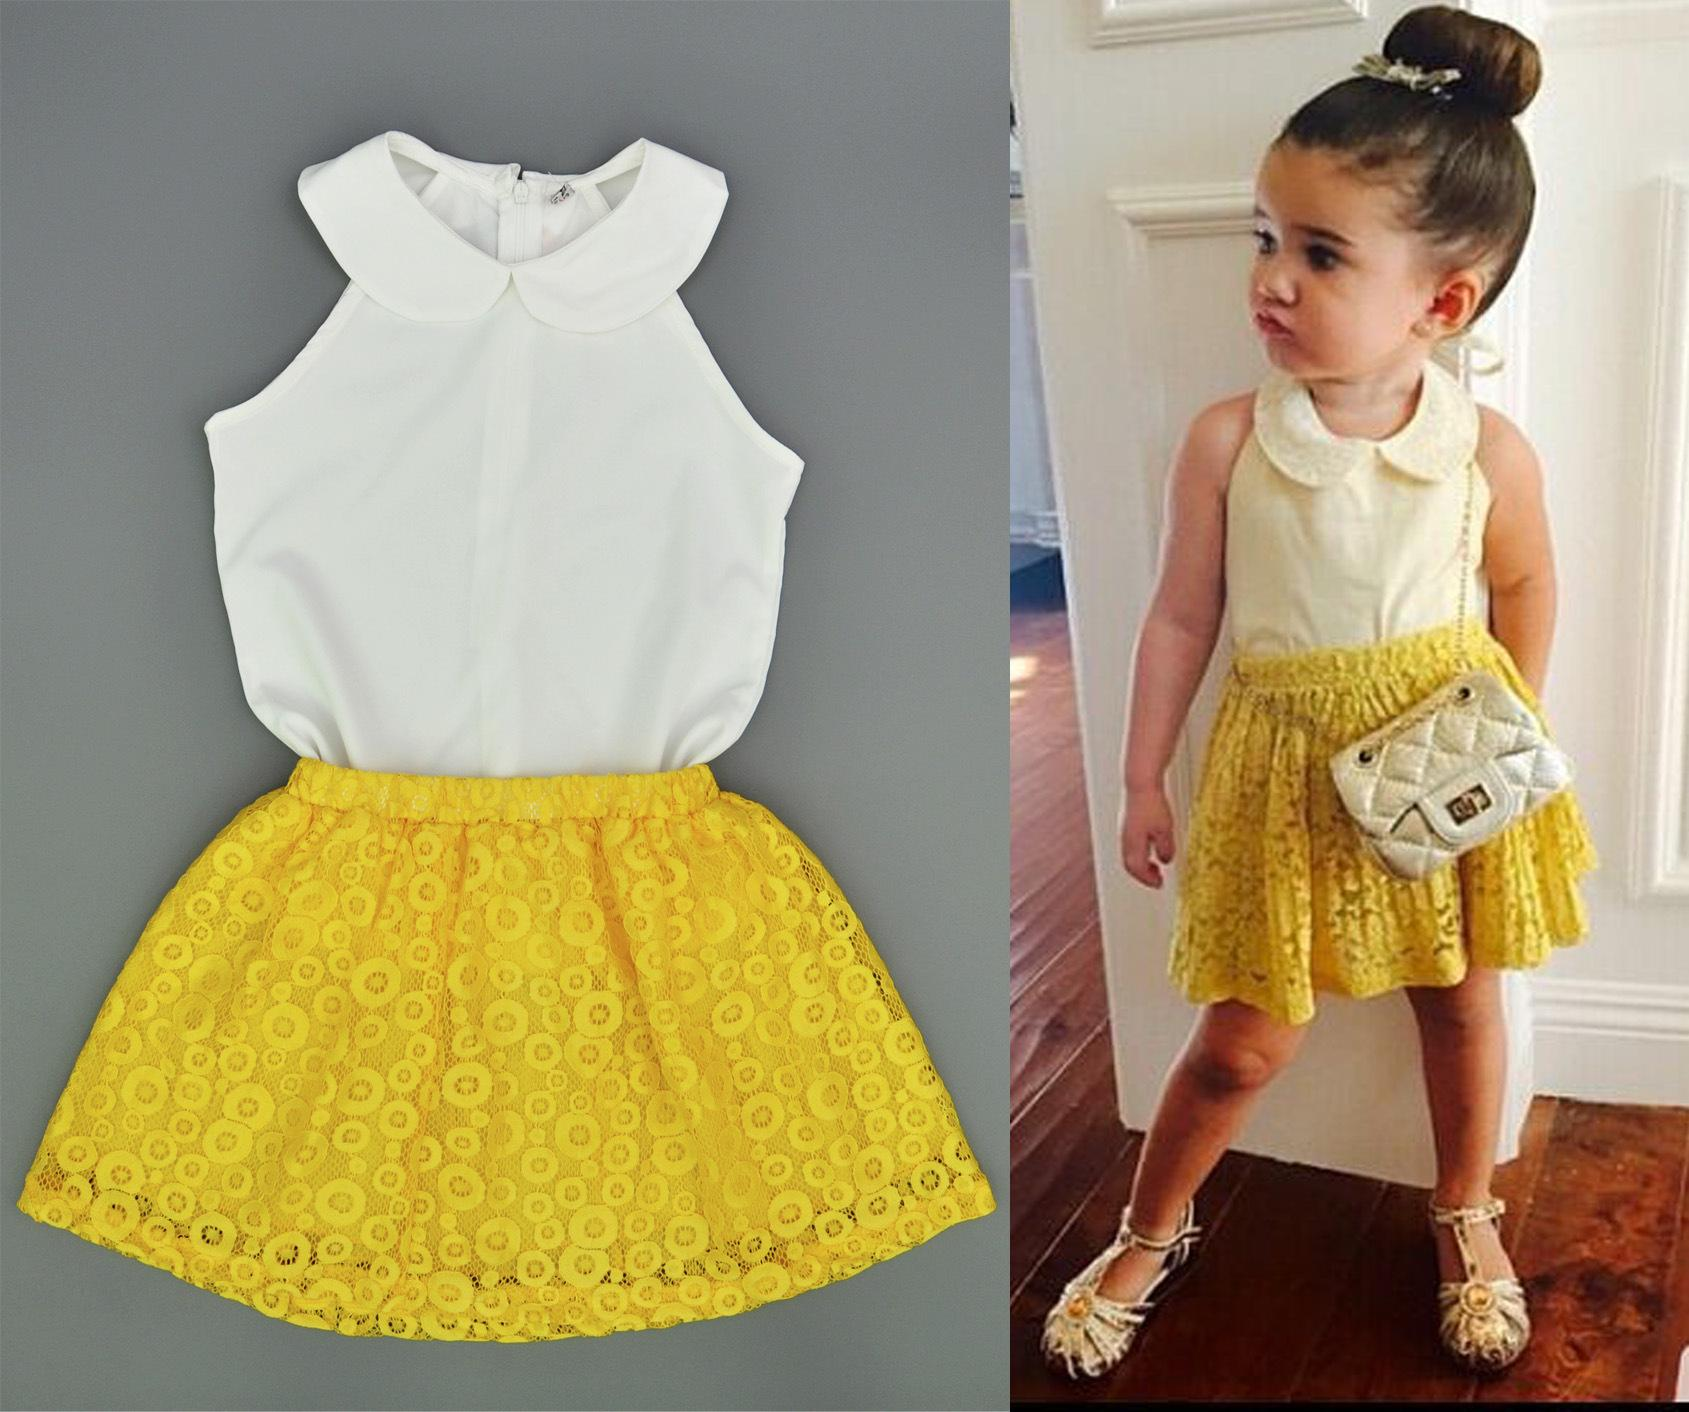 1908849ded9 2019 2018 Summer Baby Girl Clothes Sets Sleeveless White Chiffon Shirts+Yellow  Lace Skirts Kids Clothing Set Boutique Outfits From Heykang